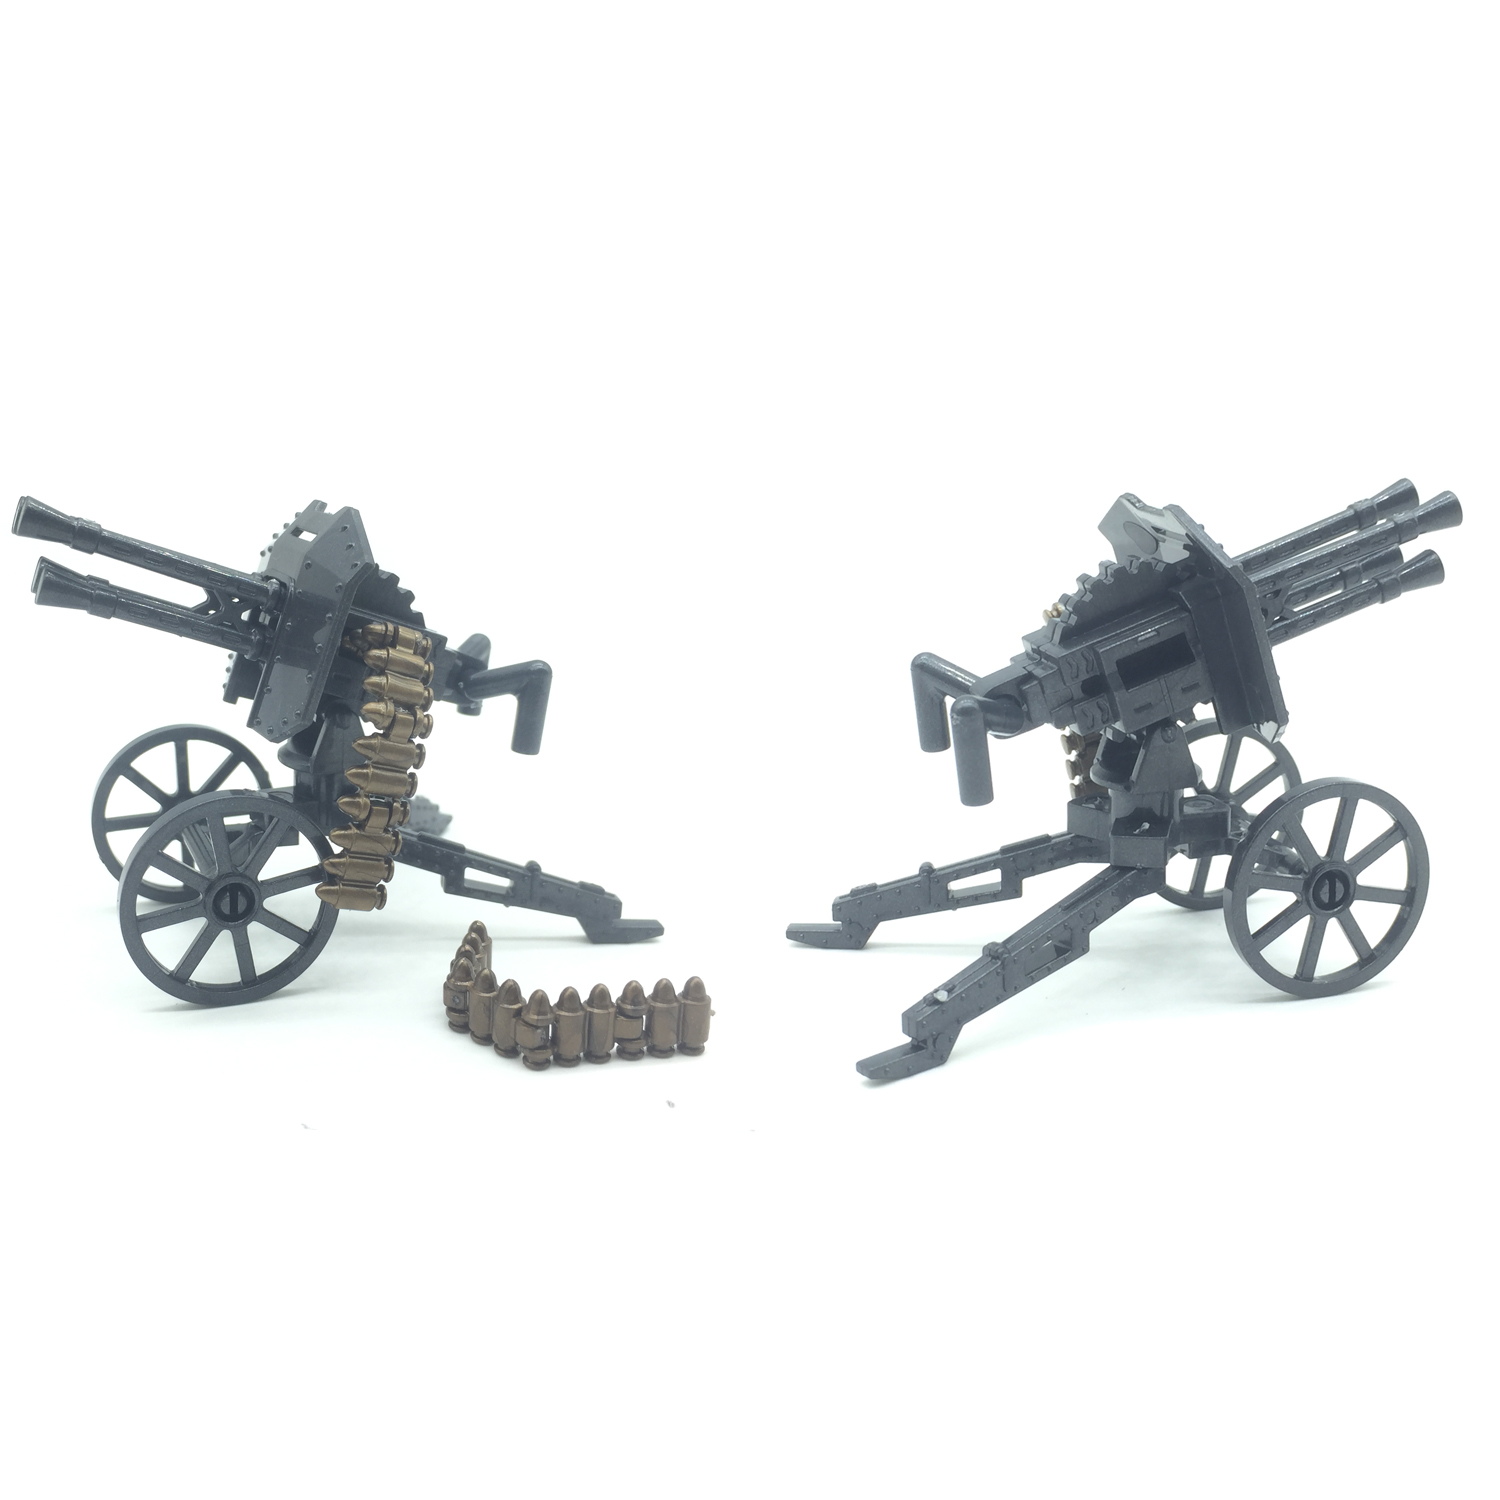 Koolfigure Military Building Block Accessories,World War 2 Artillery,Mountain Cannon,Gebirgskanone,Mountain Rifle Style 1